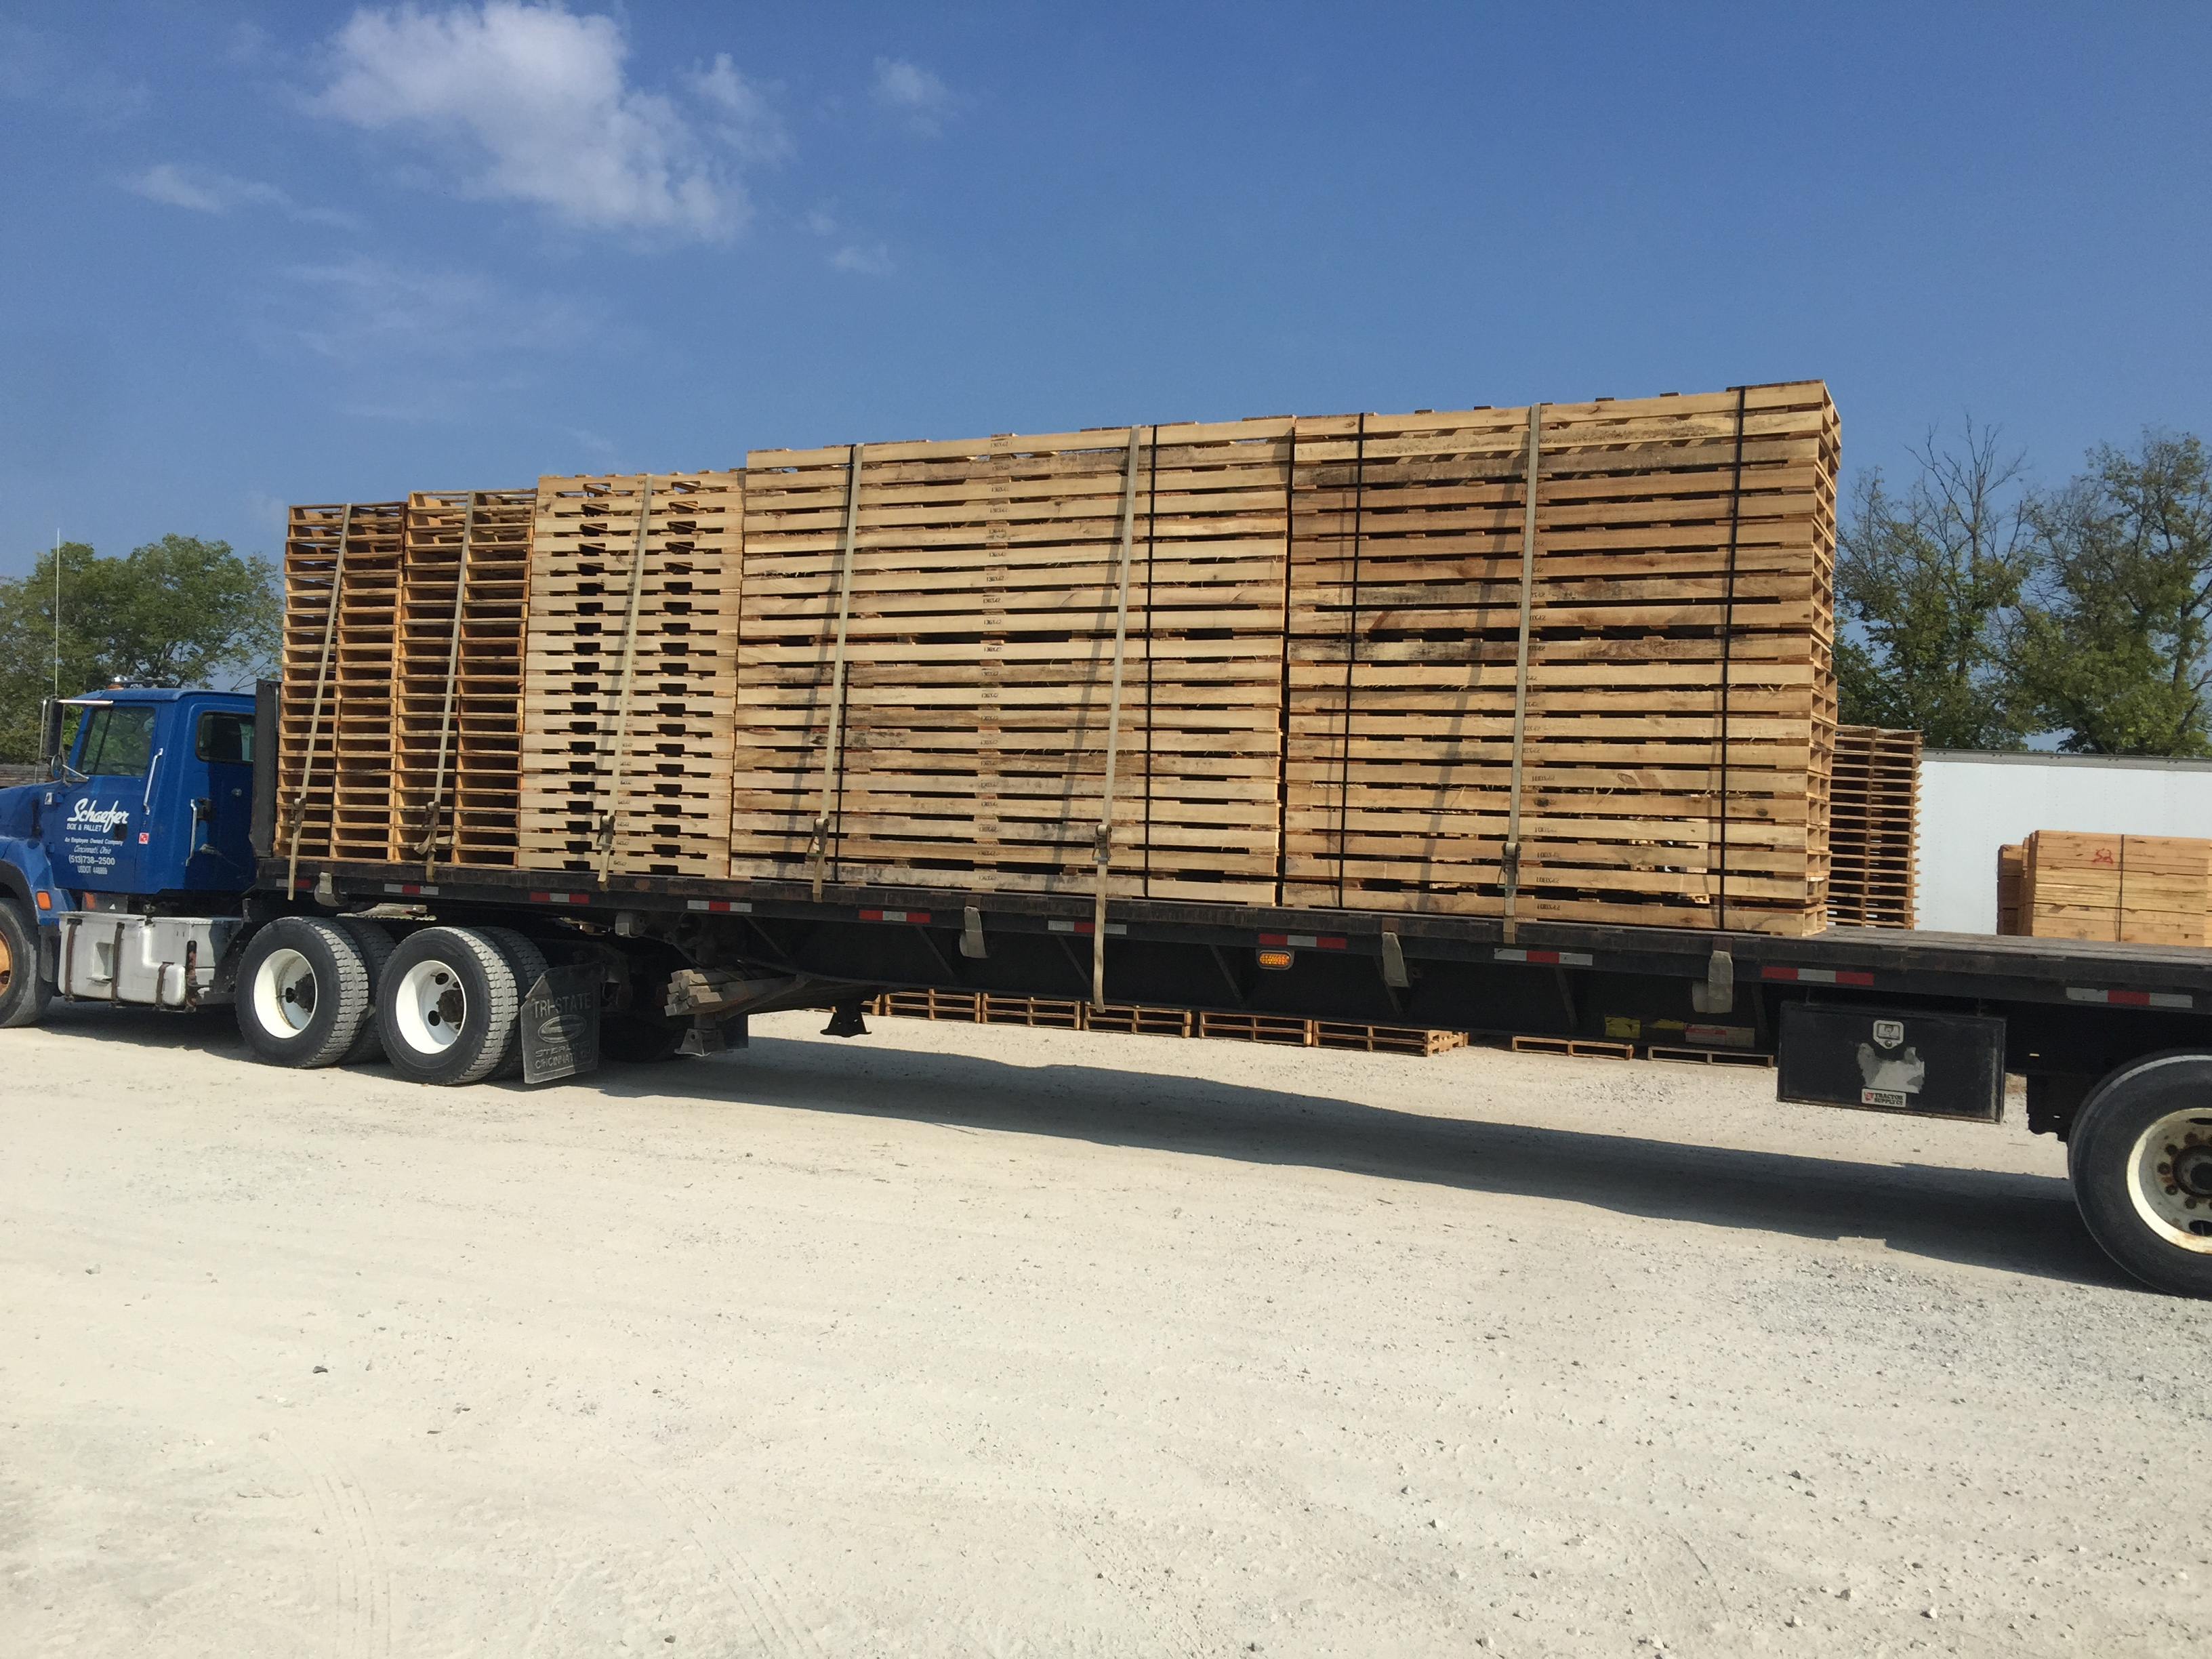 Pallets leaving for customers